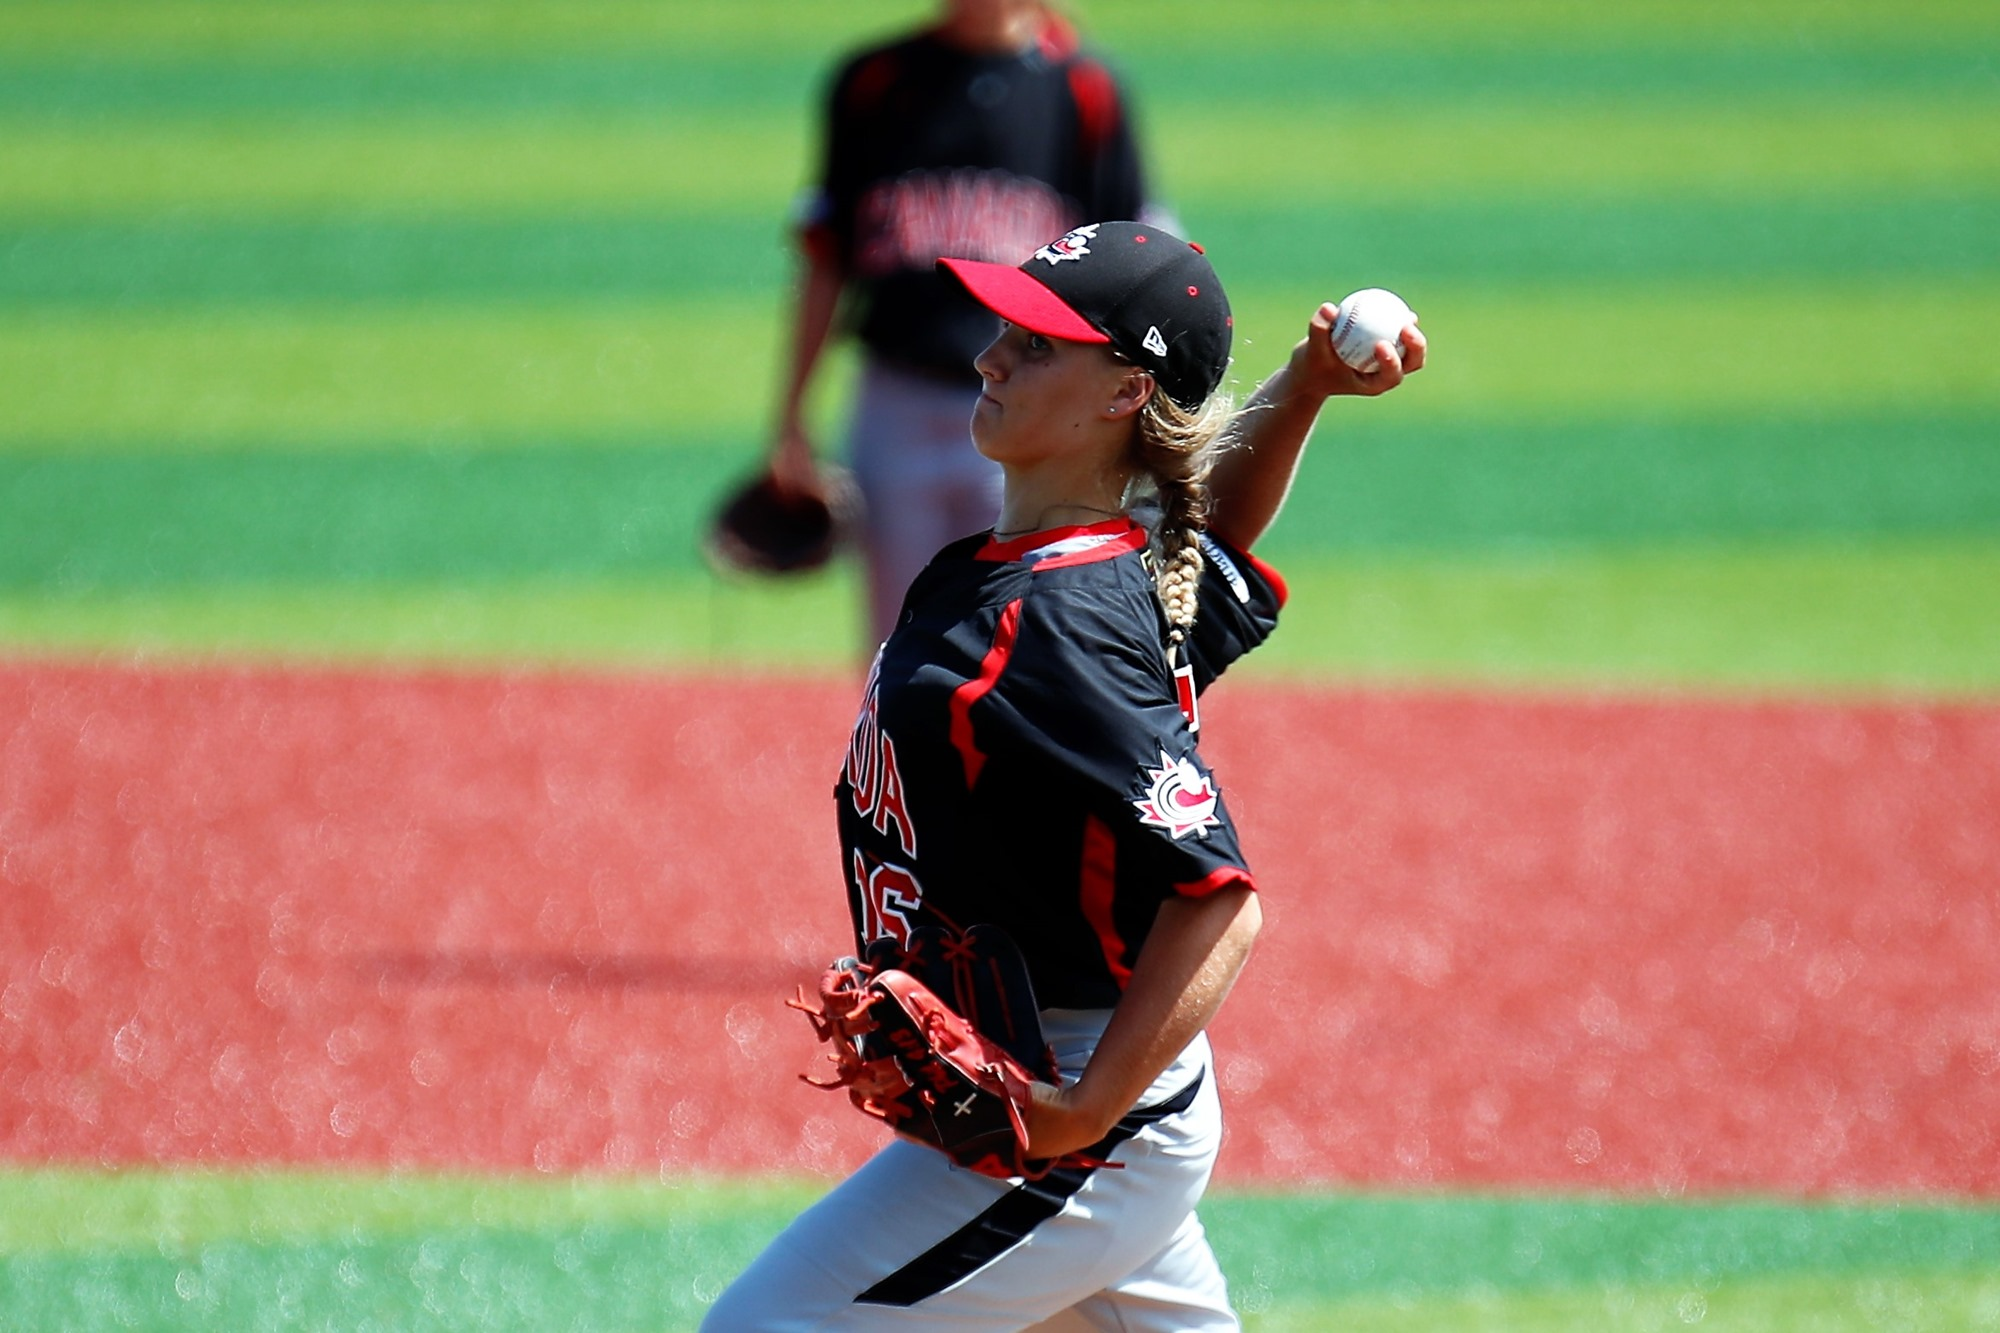 Allison Schroder, born April 2002, pitched 4.1 innings to lead Canada to the win